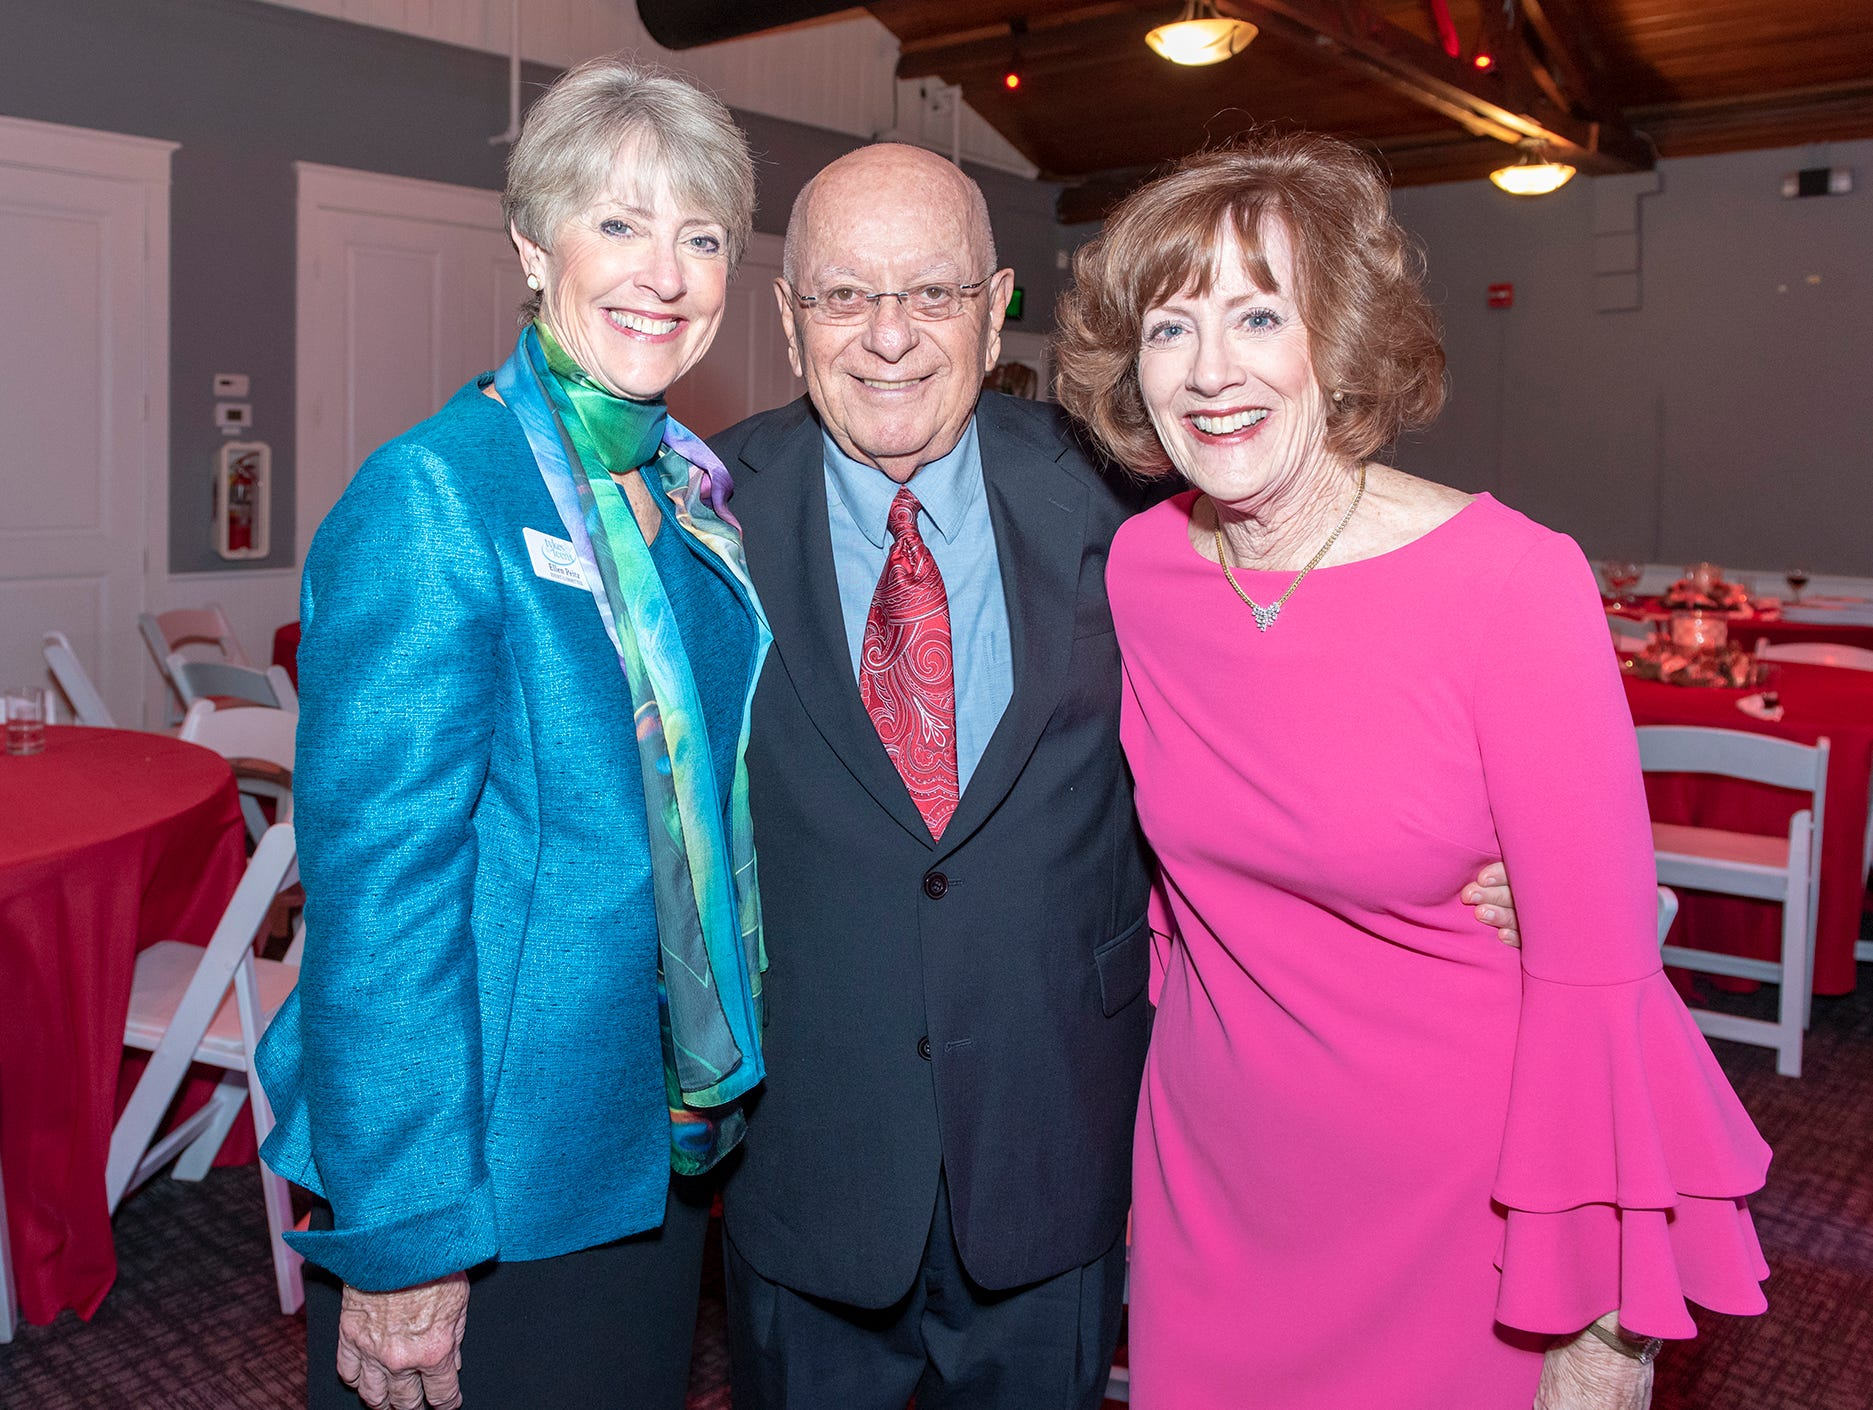 Ellen Peitz, left, Dr. Howard Voss and Joanne Kelly at the Tykes & Teens Festival of Trees & Lights.